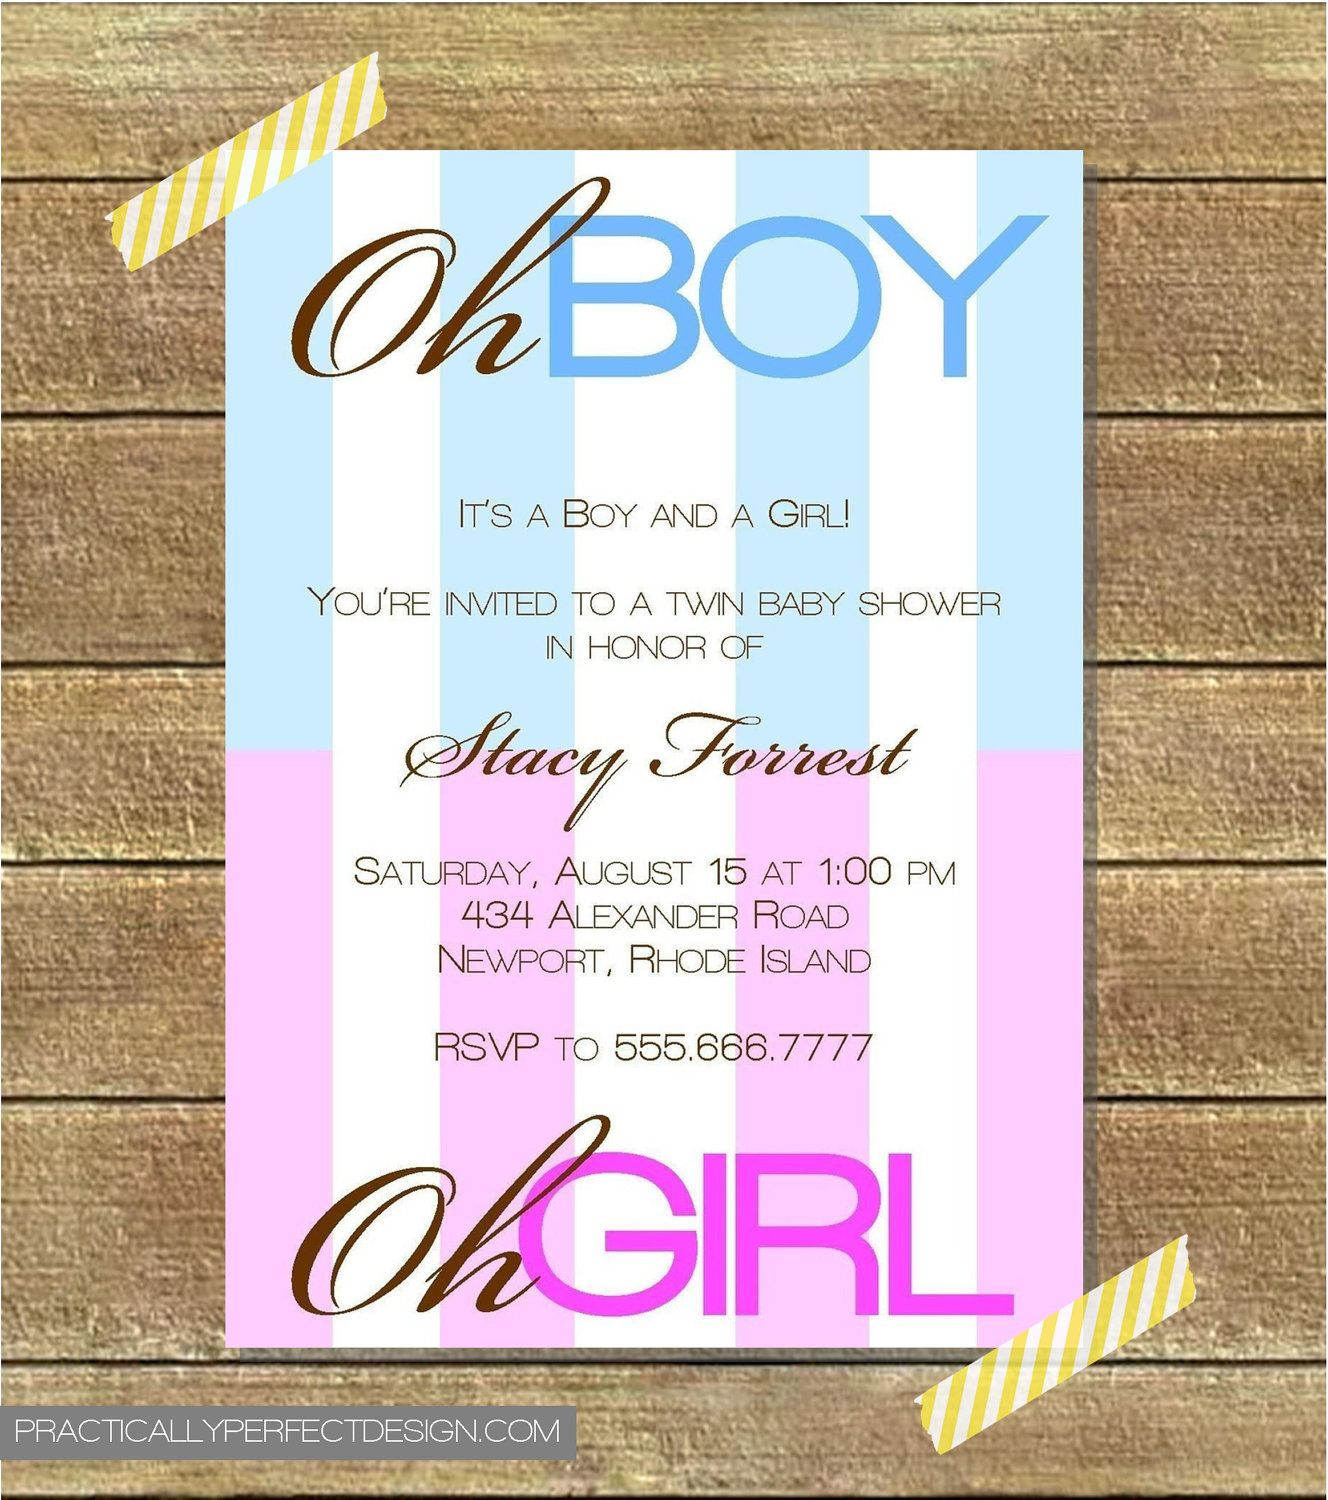 Twin Baby Shower Invitation, Boy AND Girl